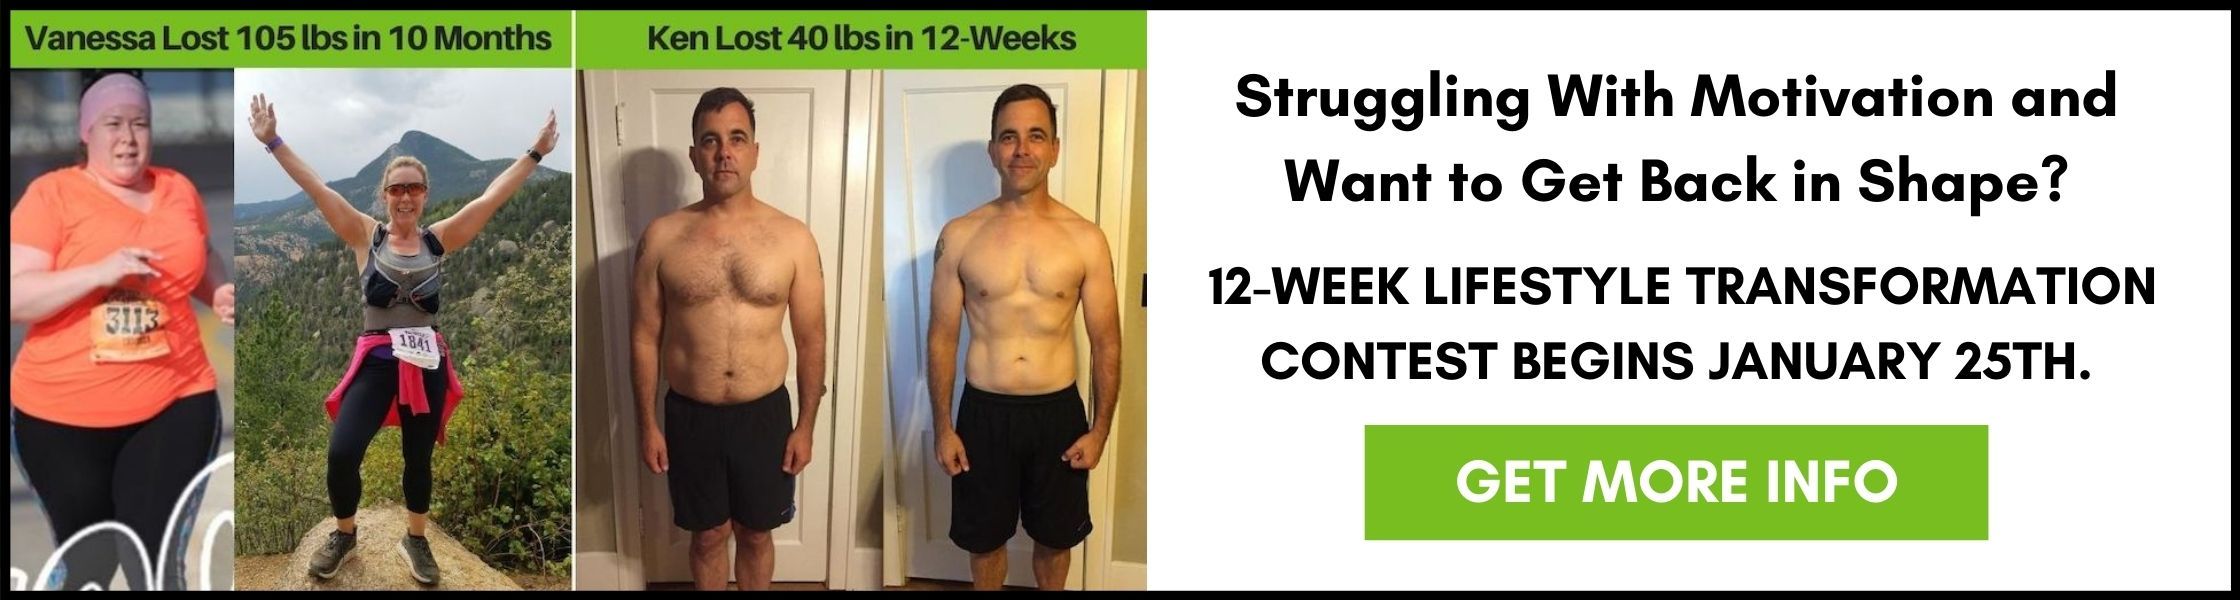 12 WEEK LIFESTYLE TRANSFORMATION - WICHITA PERSONAL TRAINING AND NUTRITION